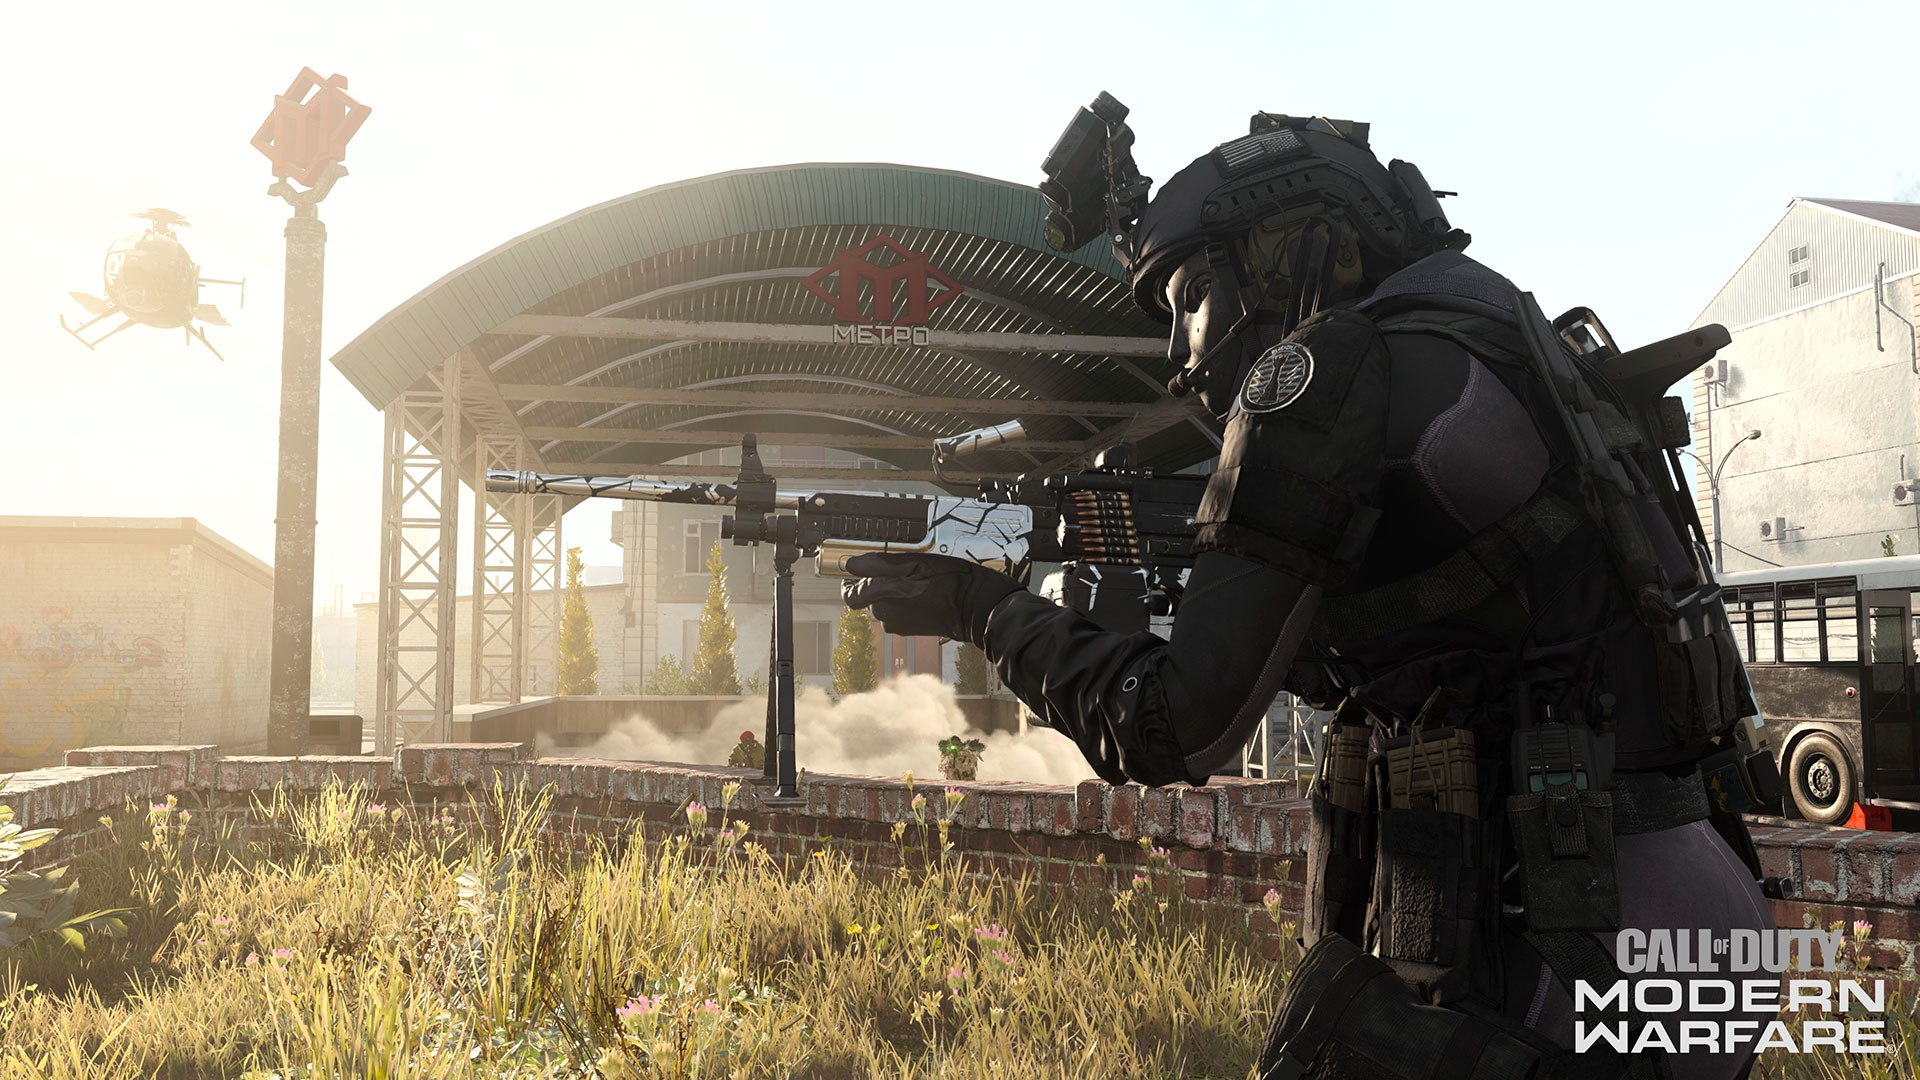 Warzone character holding an lmg